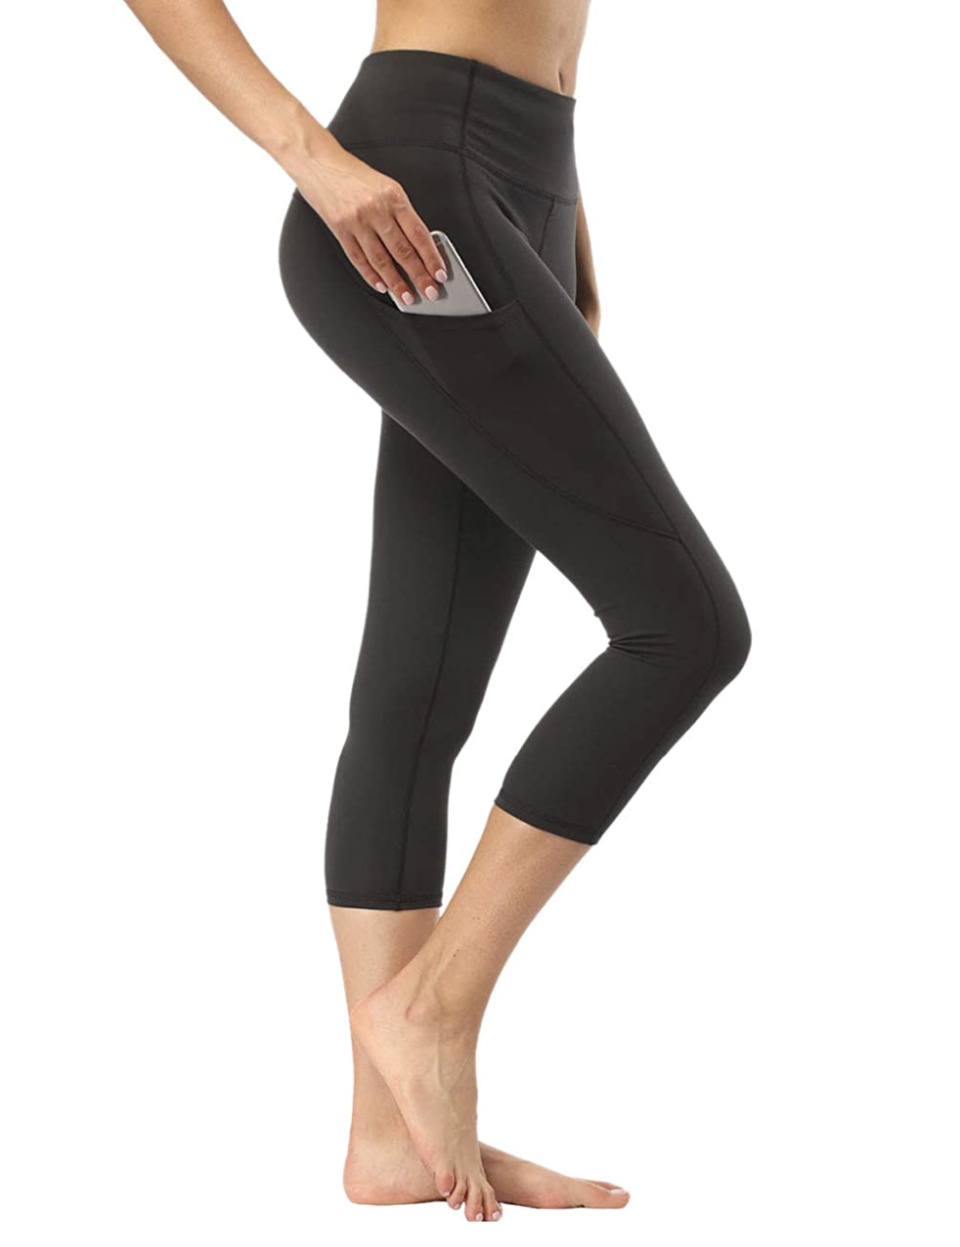 Adorence 3/4 Capris High Waist Yoga Pants for Women with Side Pockets - Amazon Canada, from $27.